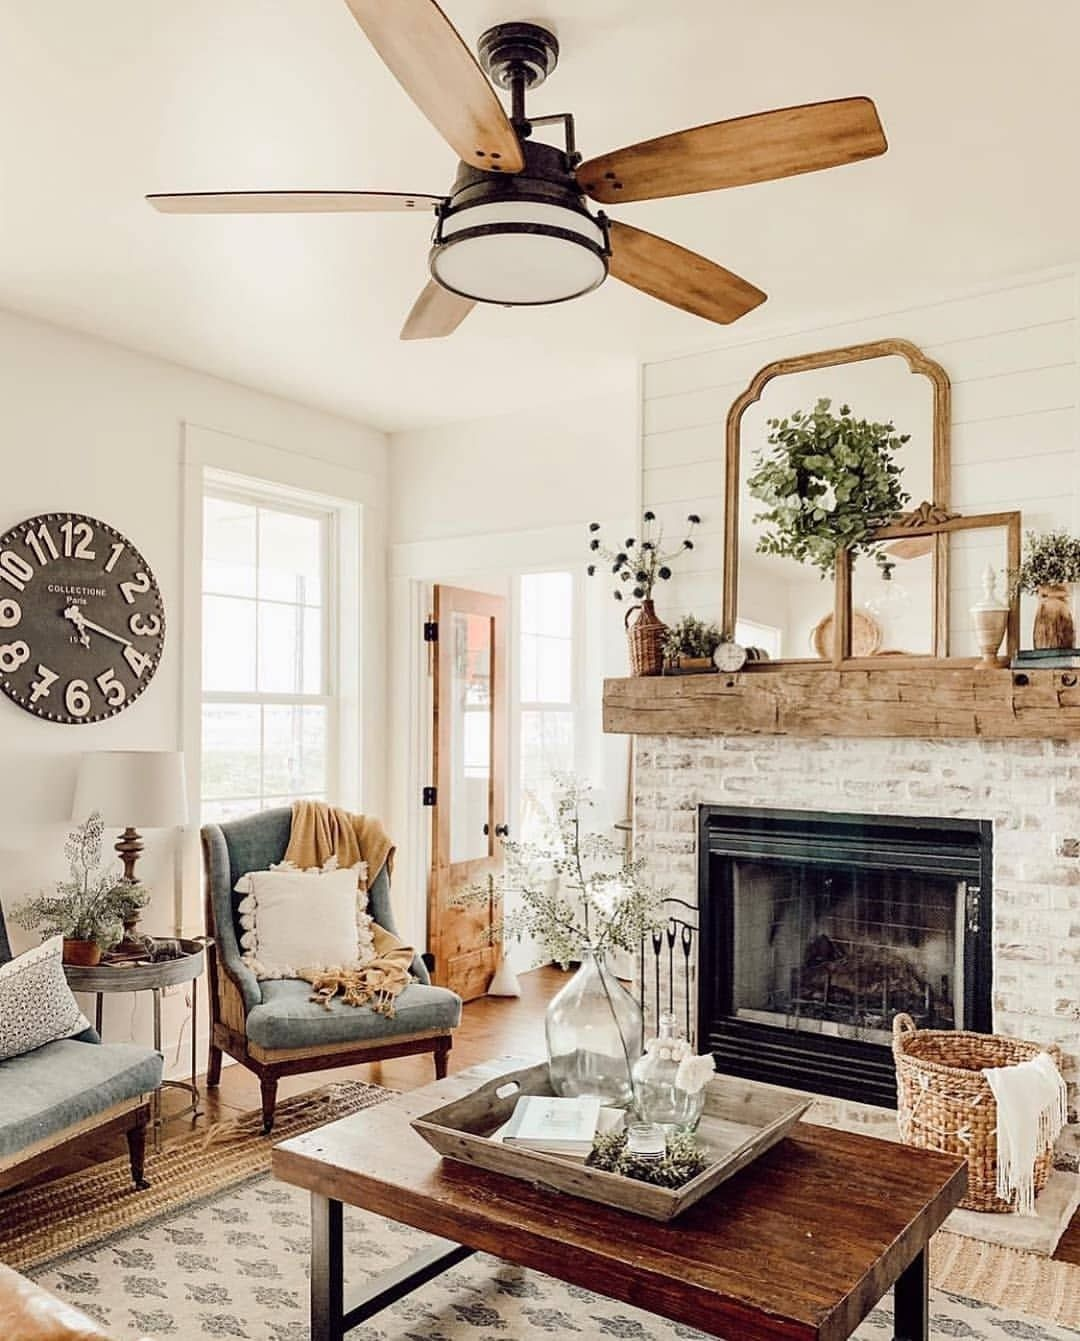 Pin By Lewis Acres Homestead Lifest On Living Room In 2020 Farm House Living Room Home Living Room Home Decor